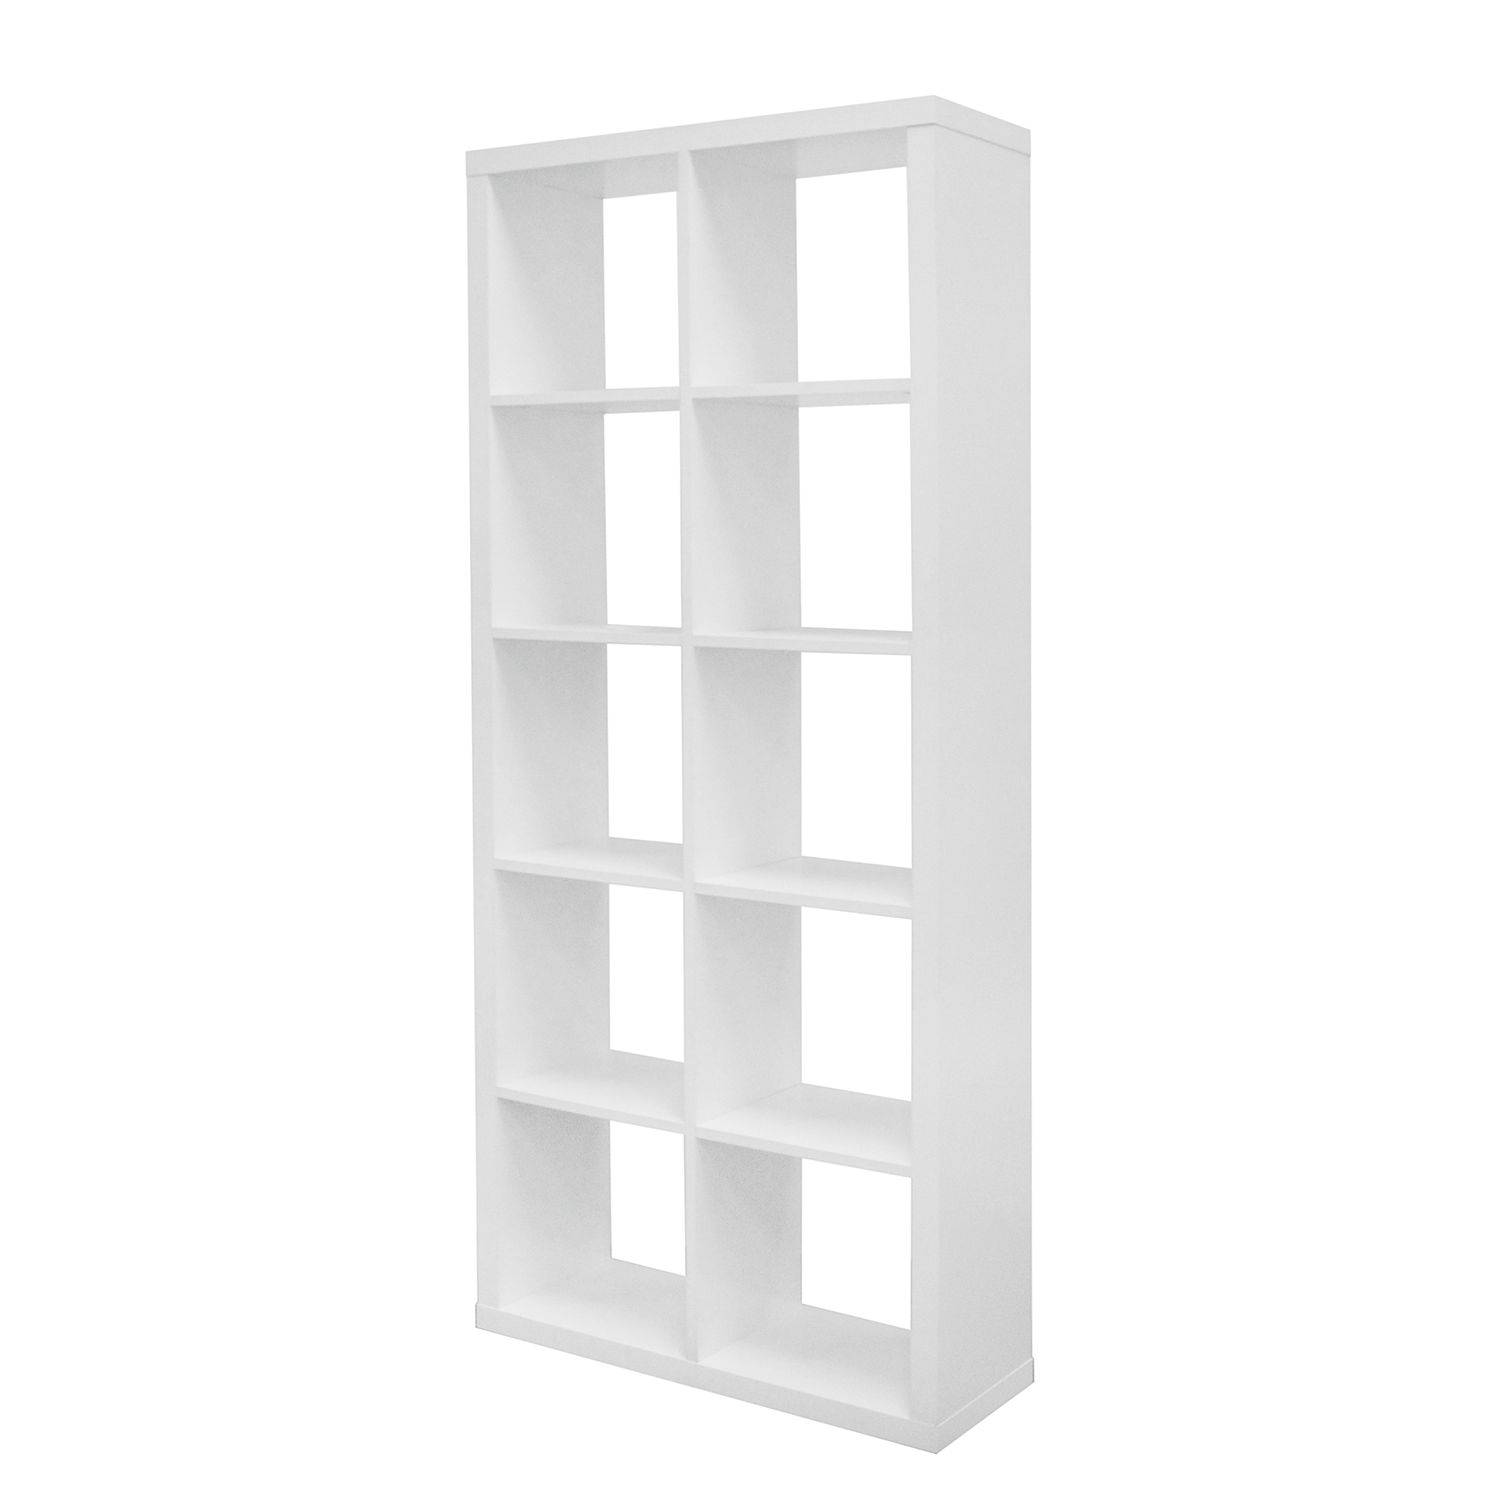 Regal Shelfy 13 Sparen Regal Shelfy Von Roomscape Nur 129 99